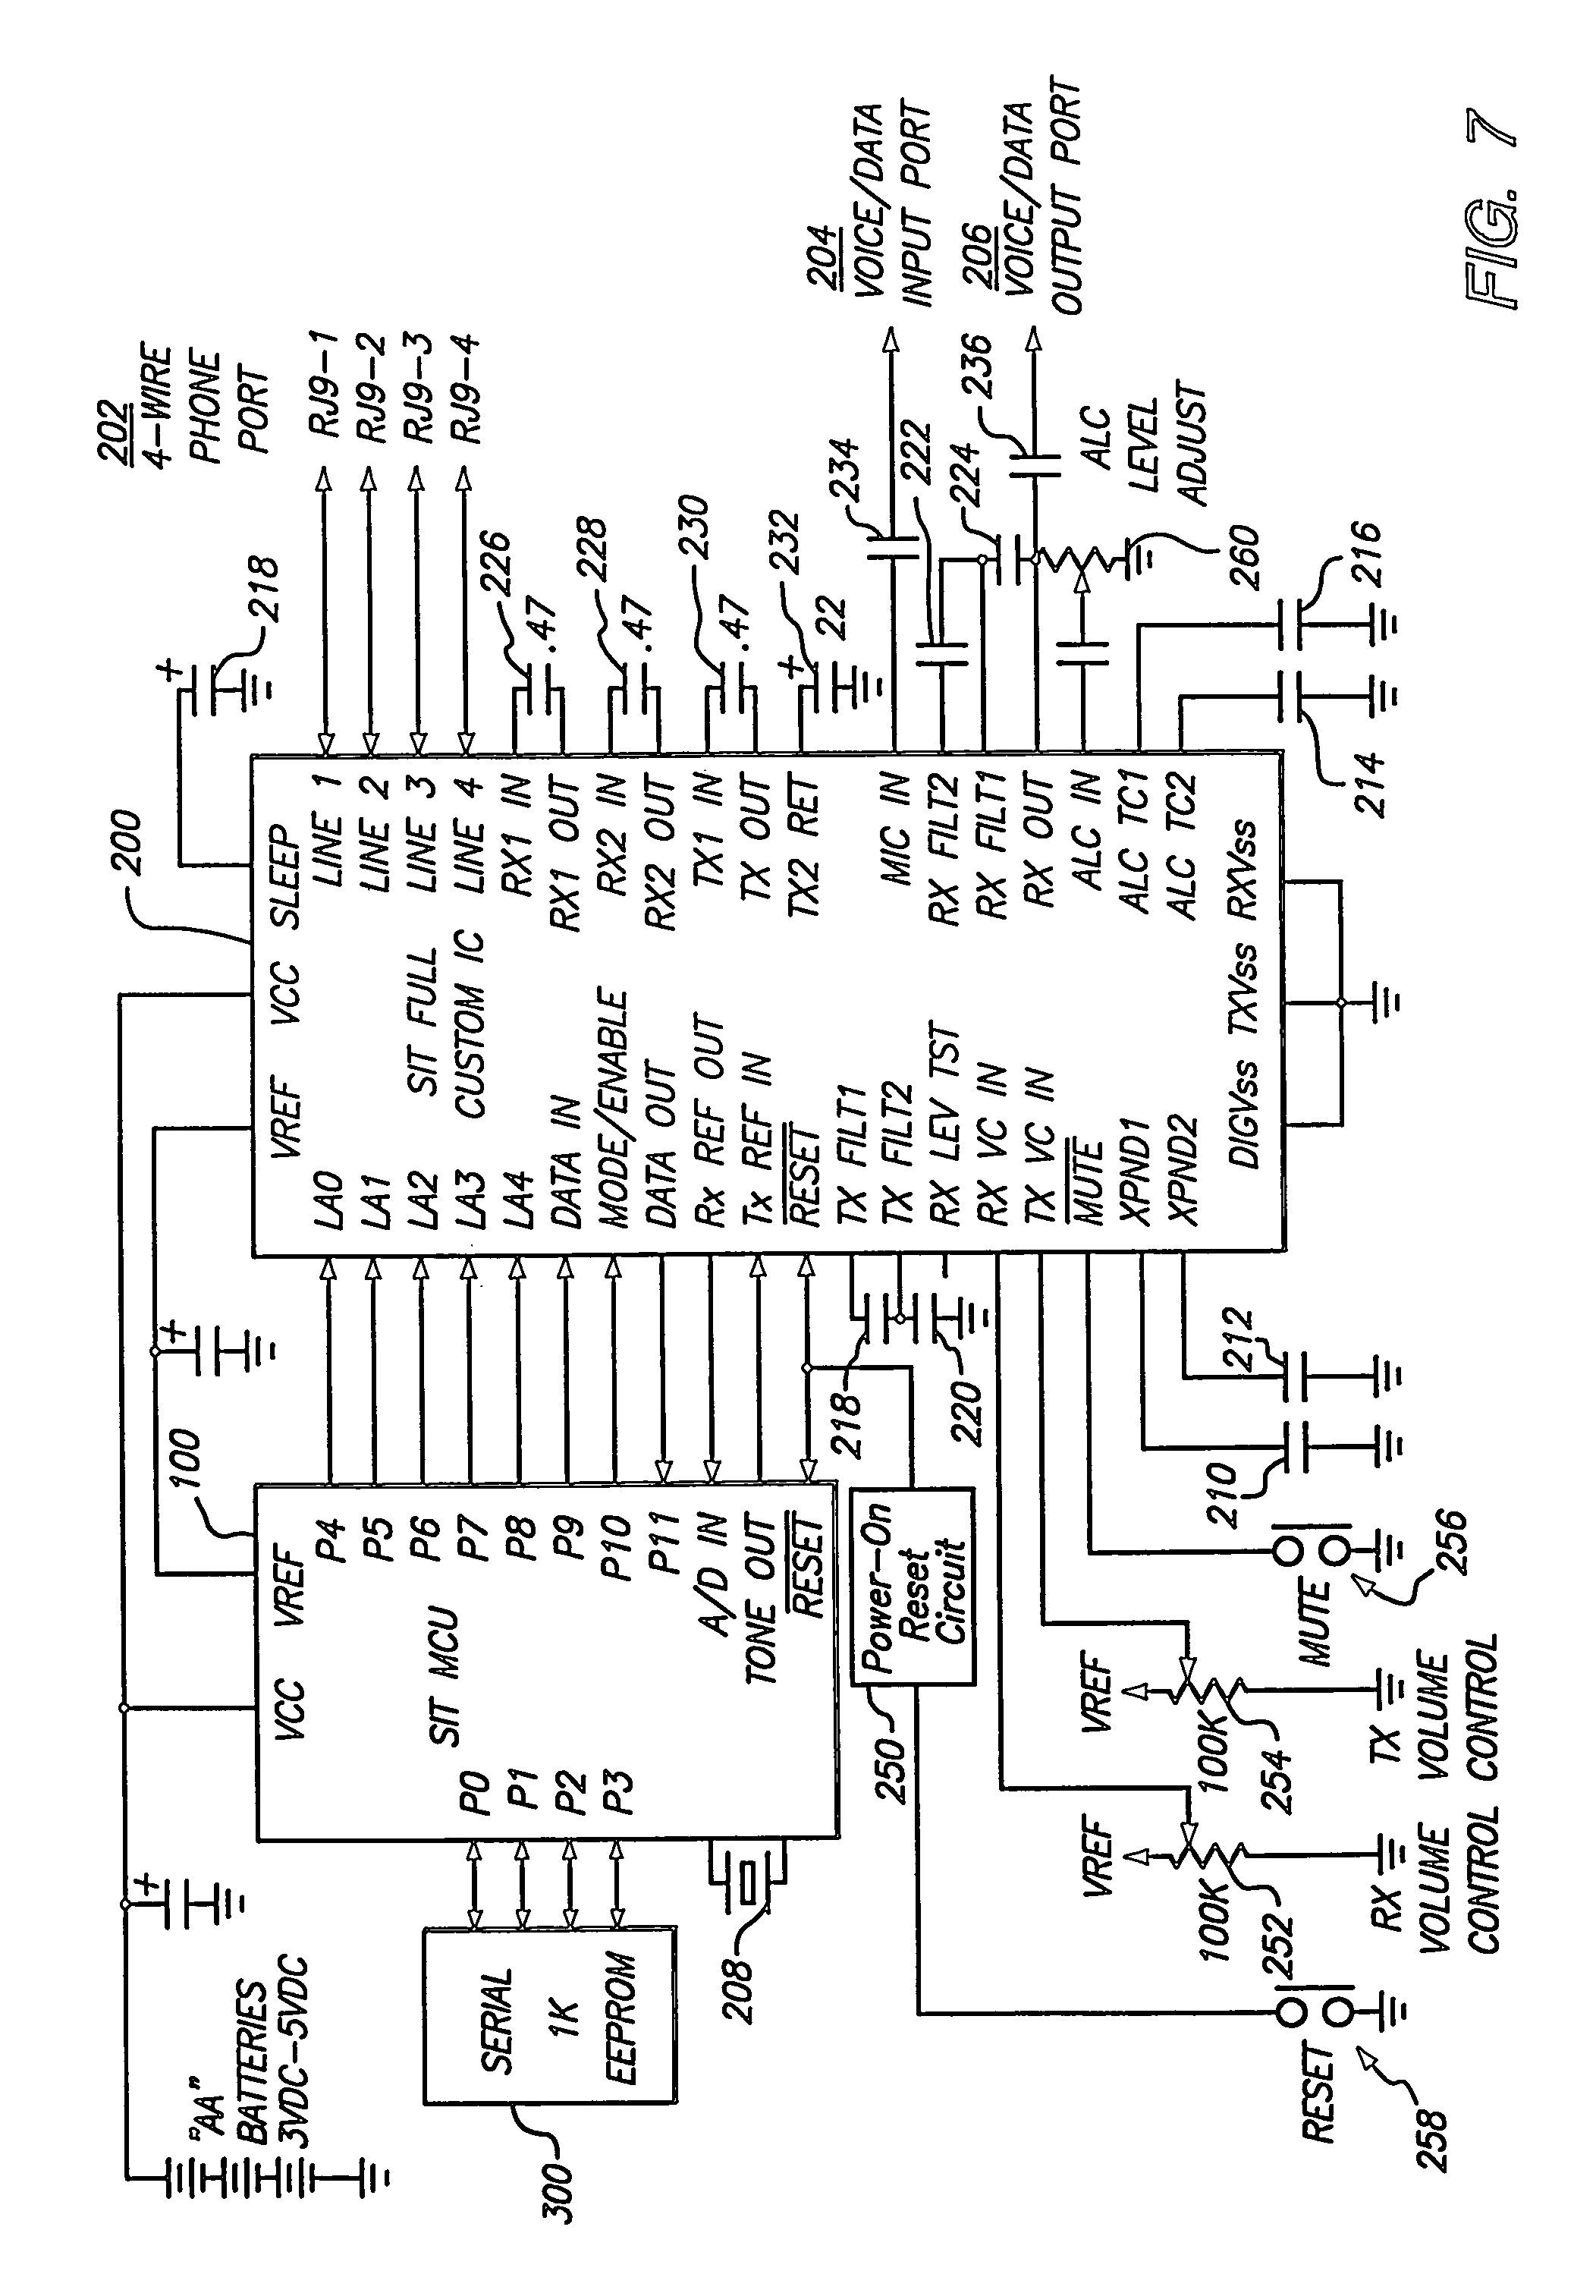 apple headset wiring diagram with Cell Phone Headt Wiring Diagram on Mouse Usb Serial Wiring Diagram likewise 6402 Ham Radio IPhone Style Speaker Mic furthermore Beats Wireless Bluetooth Stereo Headphones furthermore Index php furthermore Headset Ptt Wiring Diagram.